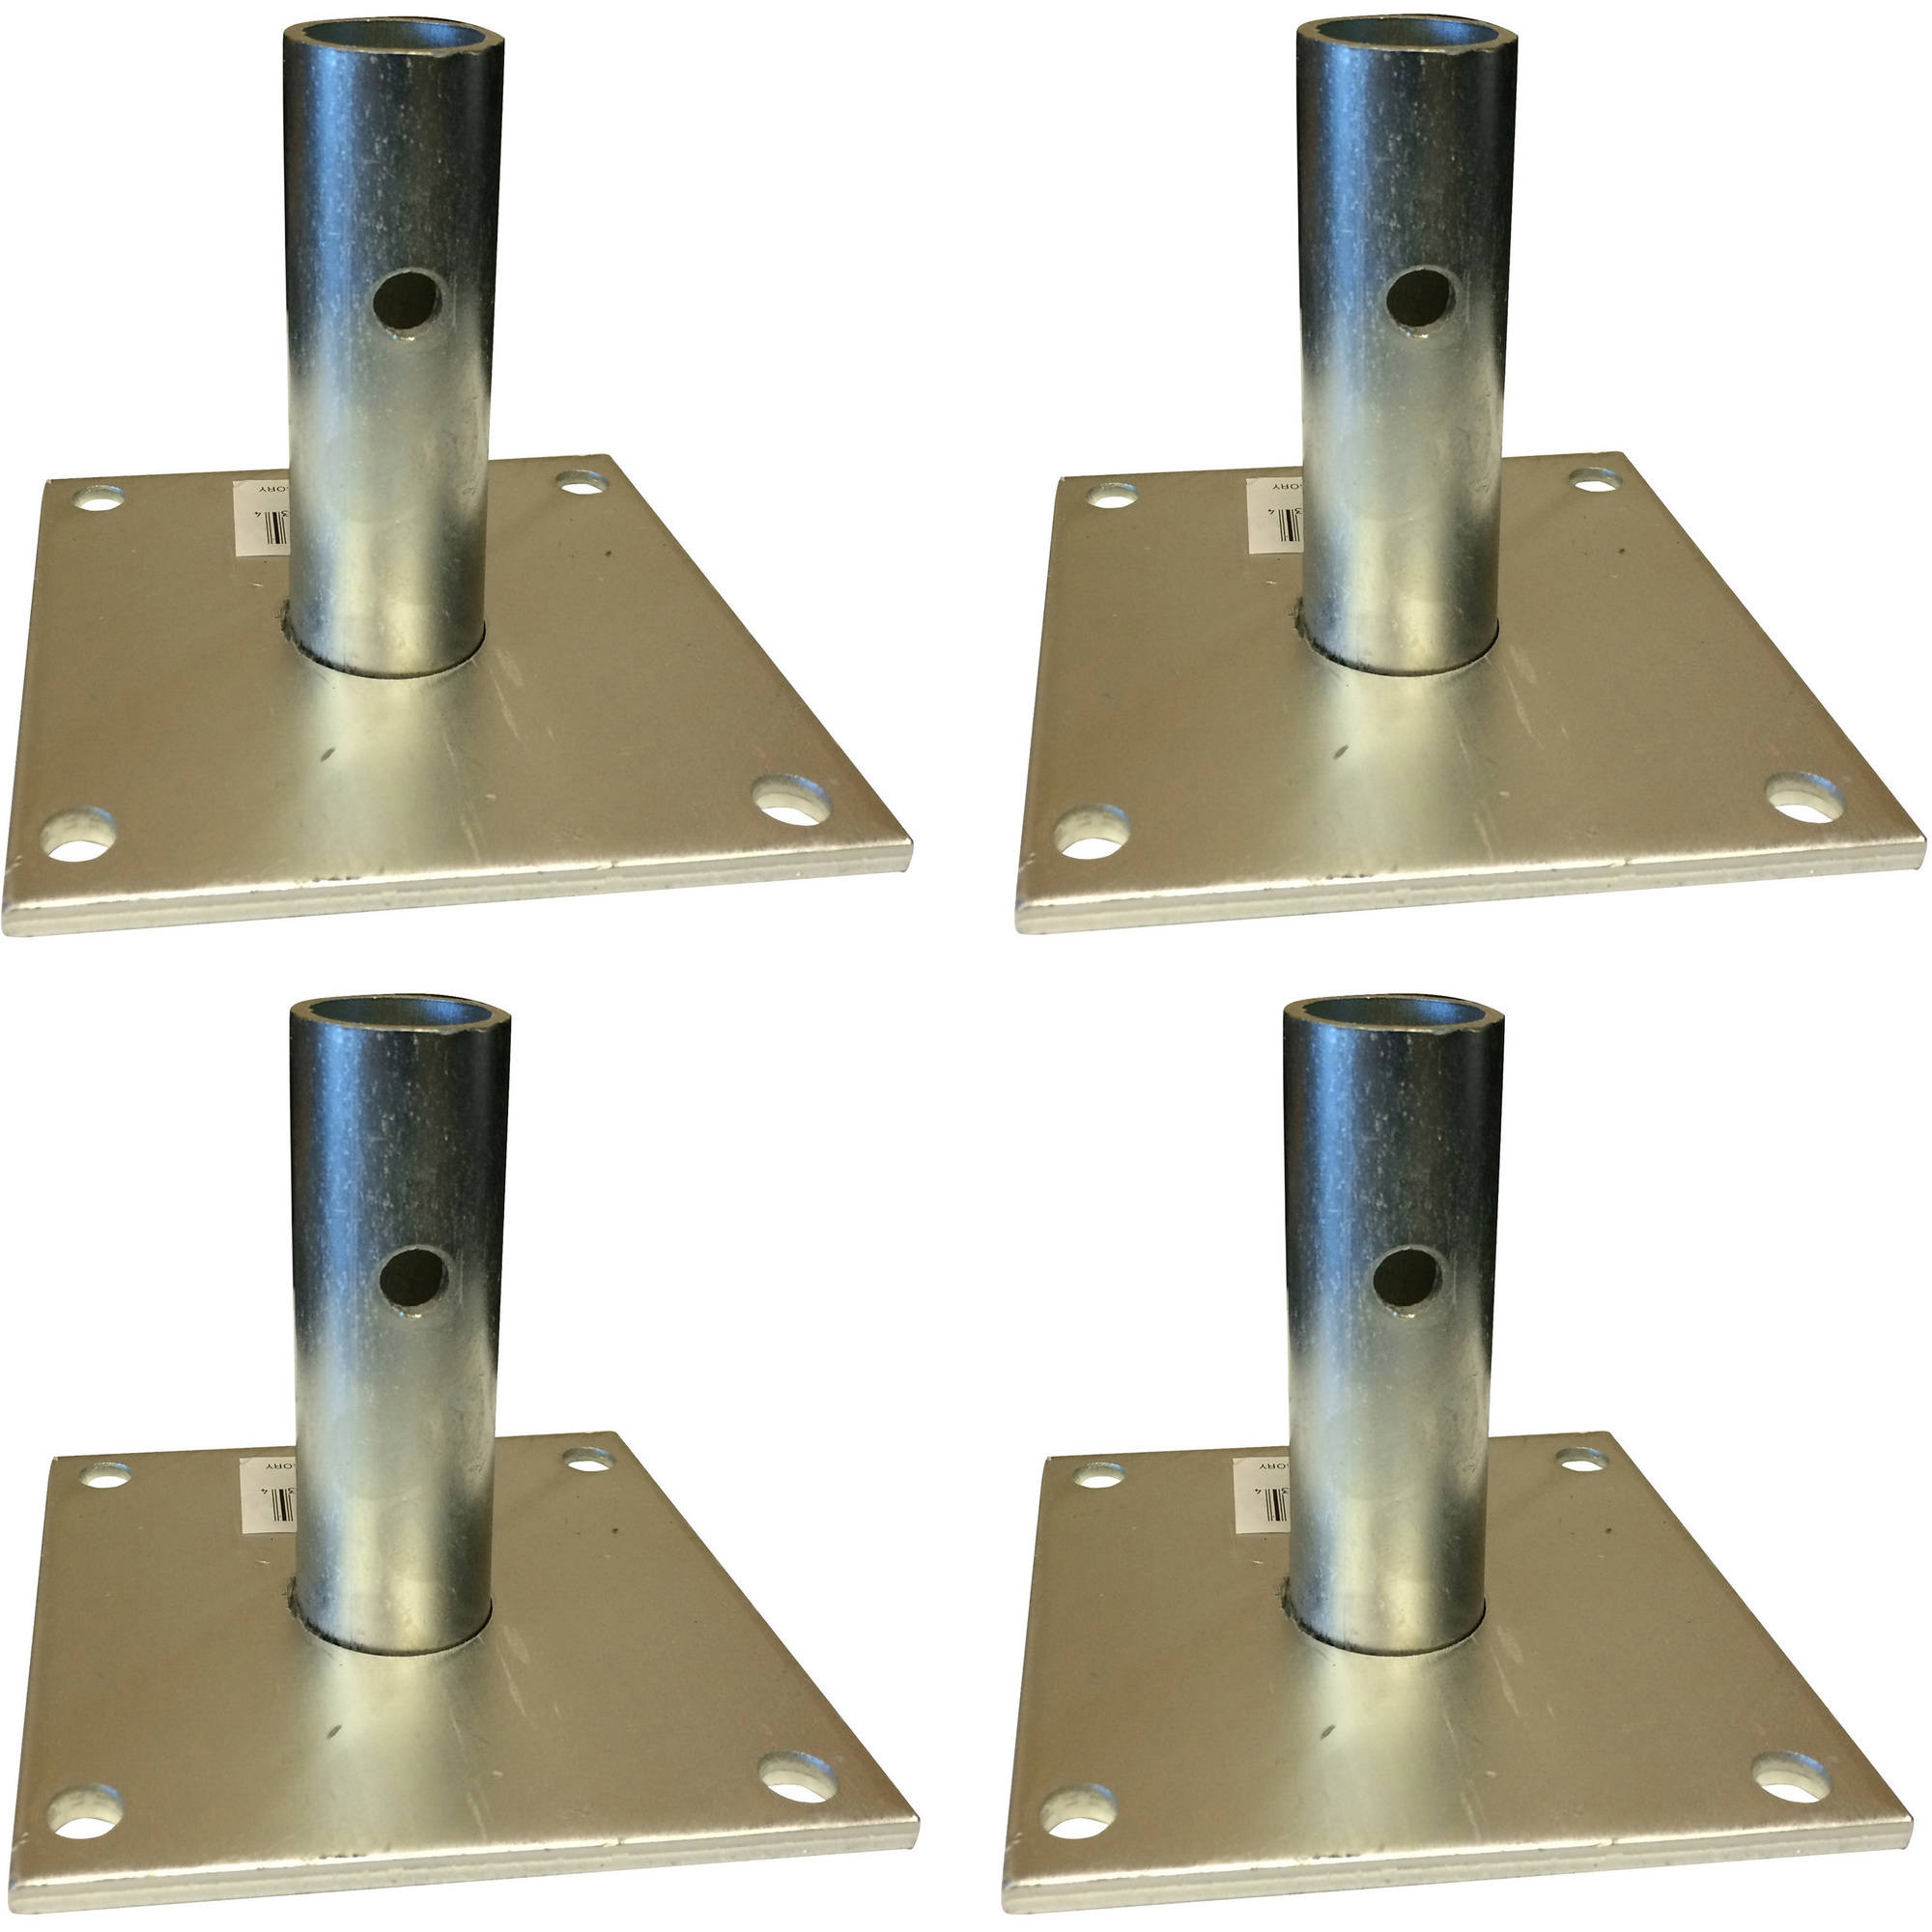 Pro-Series Scaffold Base Plate Set, 4-Piece